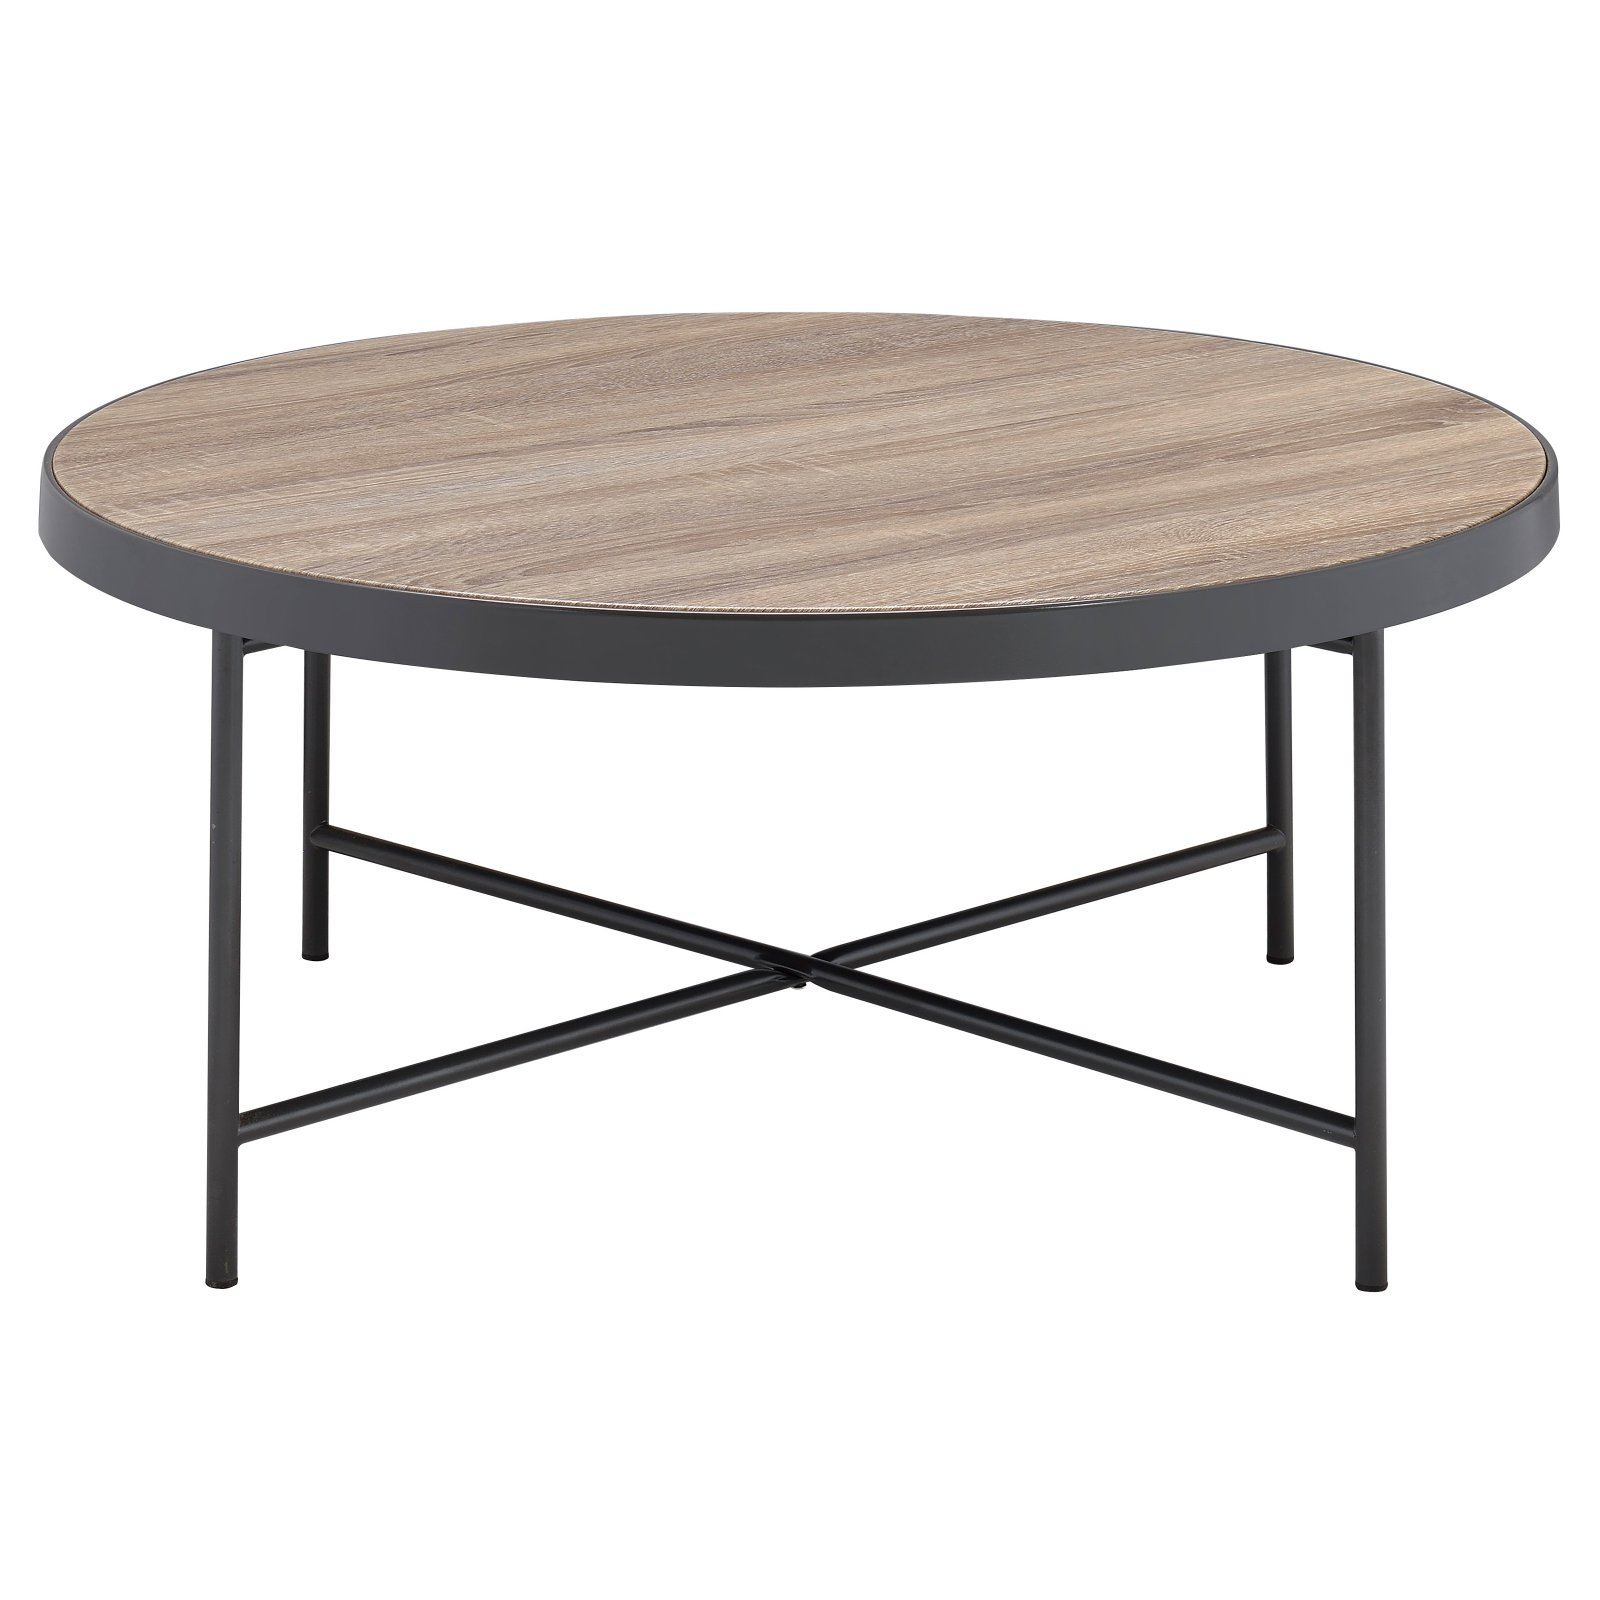 ACME Bage Coffee Table, Weathered Gray Oak by Acme Furniture